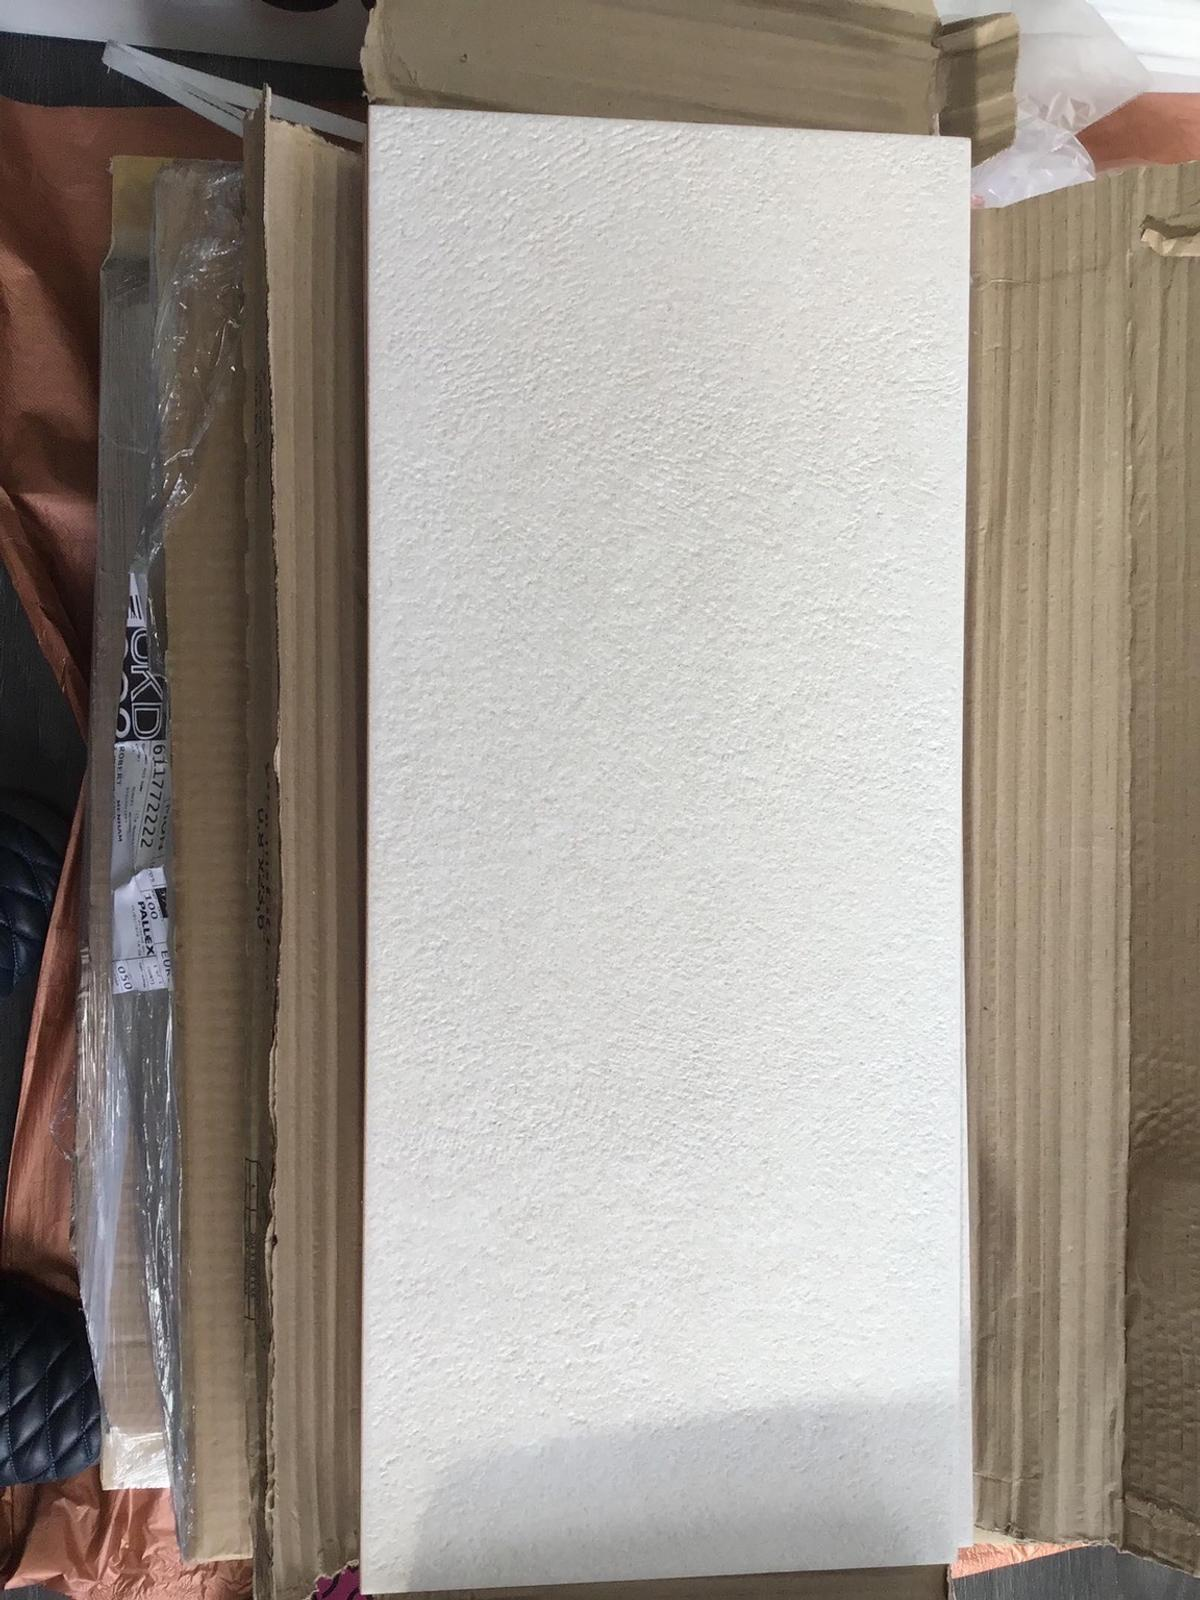 Off white ceramic tiles 6 boxes never being used bought too many